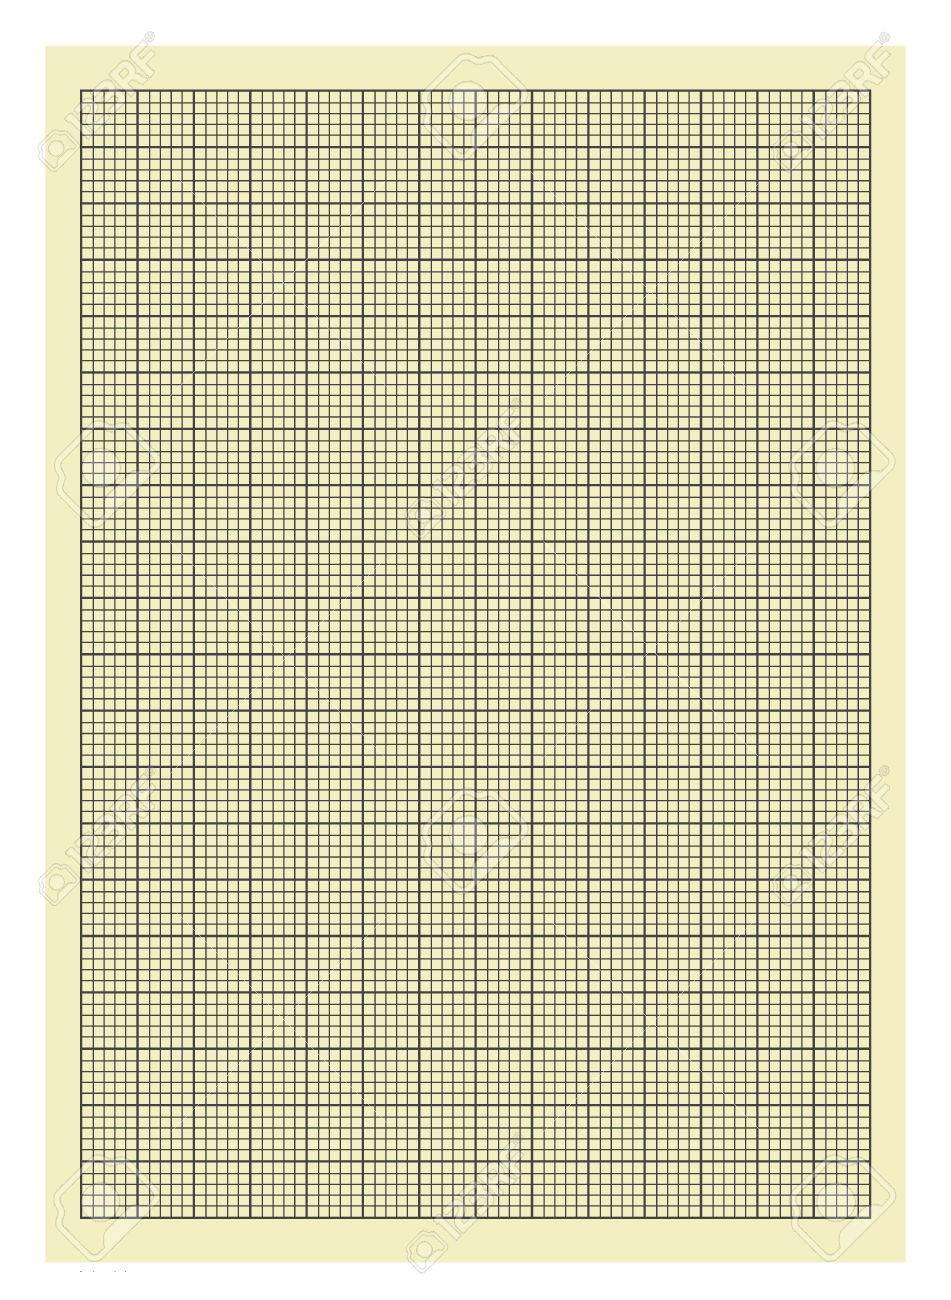 yellow and black lined graph paper isolated on white background